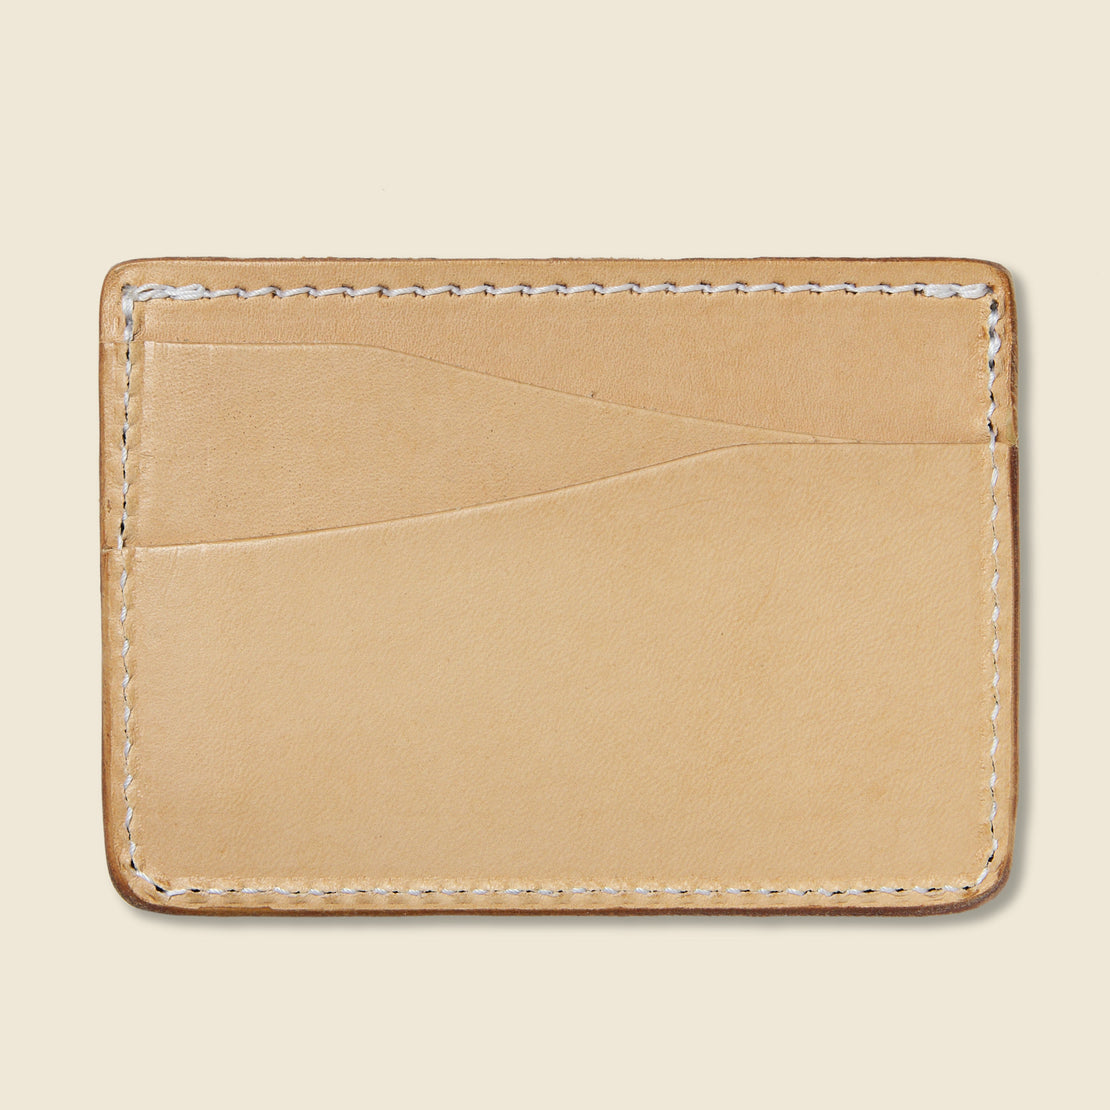 Journeyman Wallet - Natural - Tanner - STAG Provisions - Accessories - Wallets